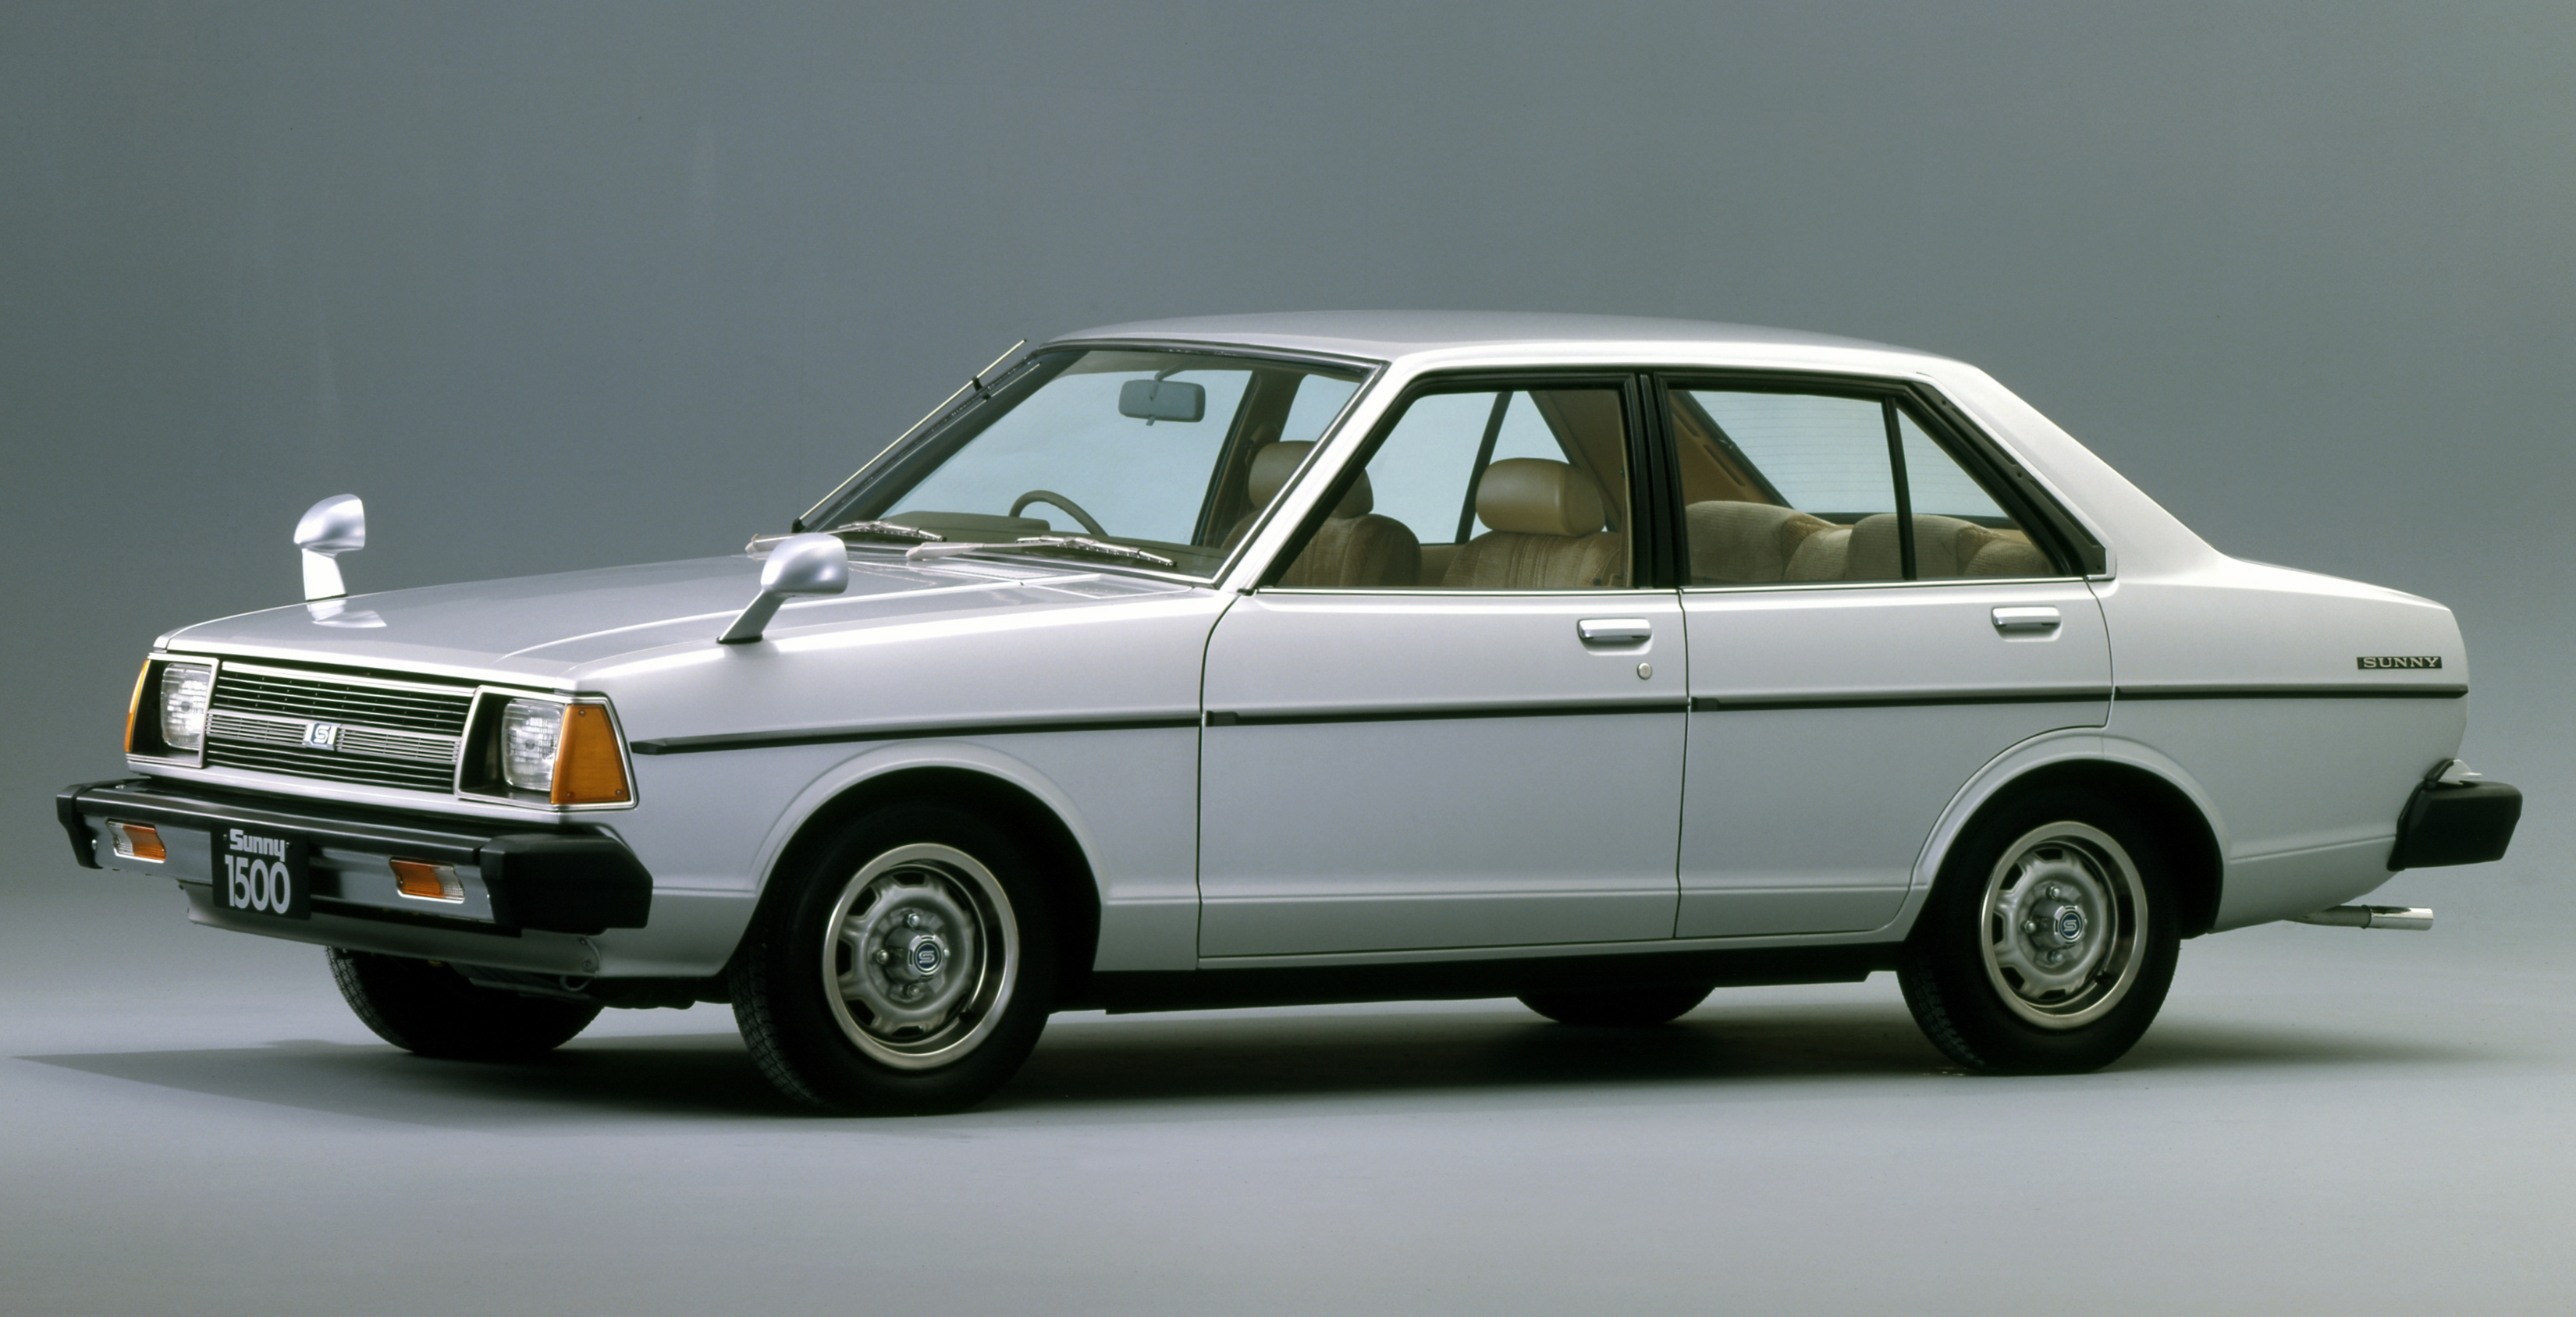 Datsun 120 Y Price in Pakistan, Pictures and Reviews ...